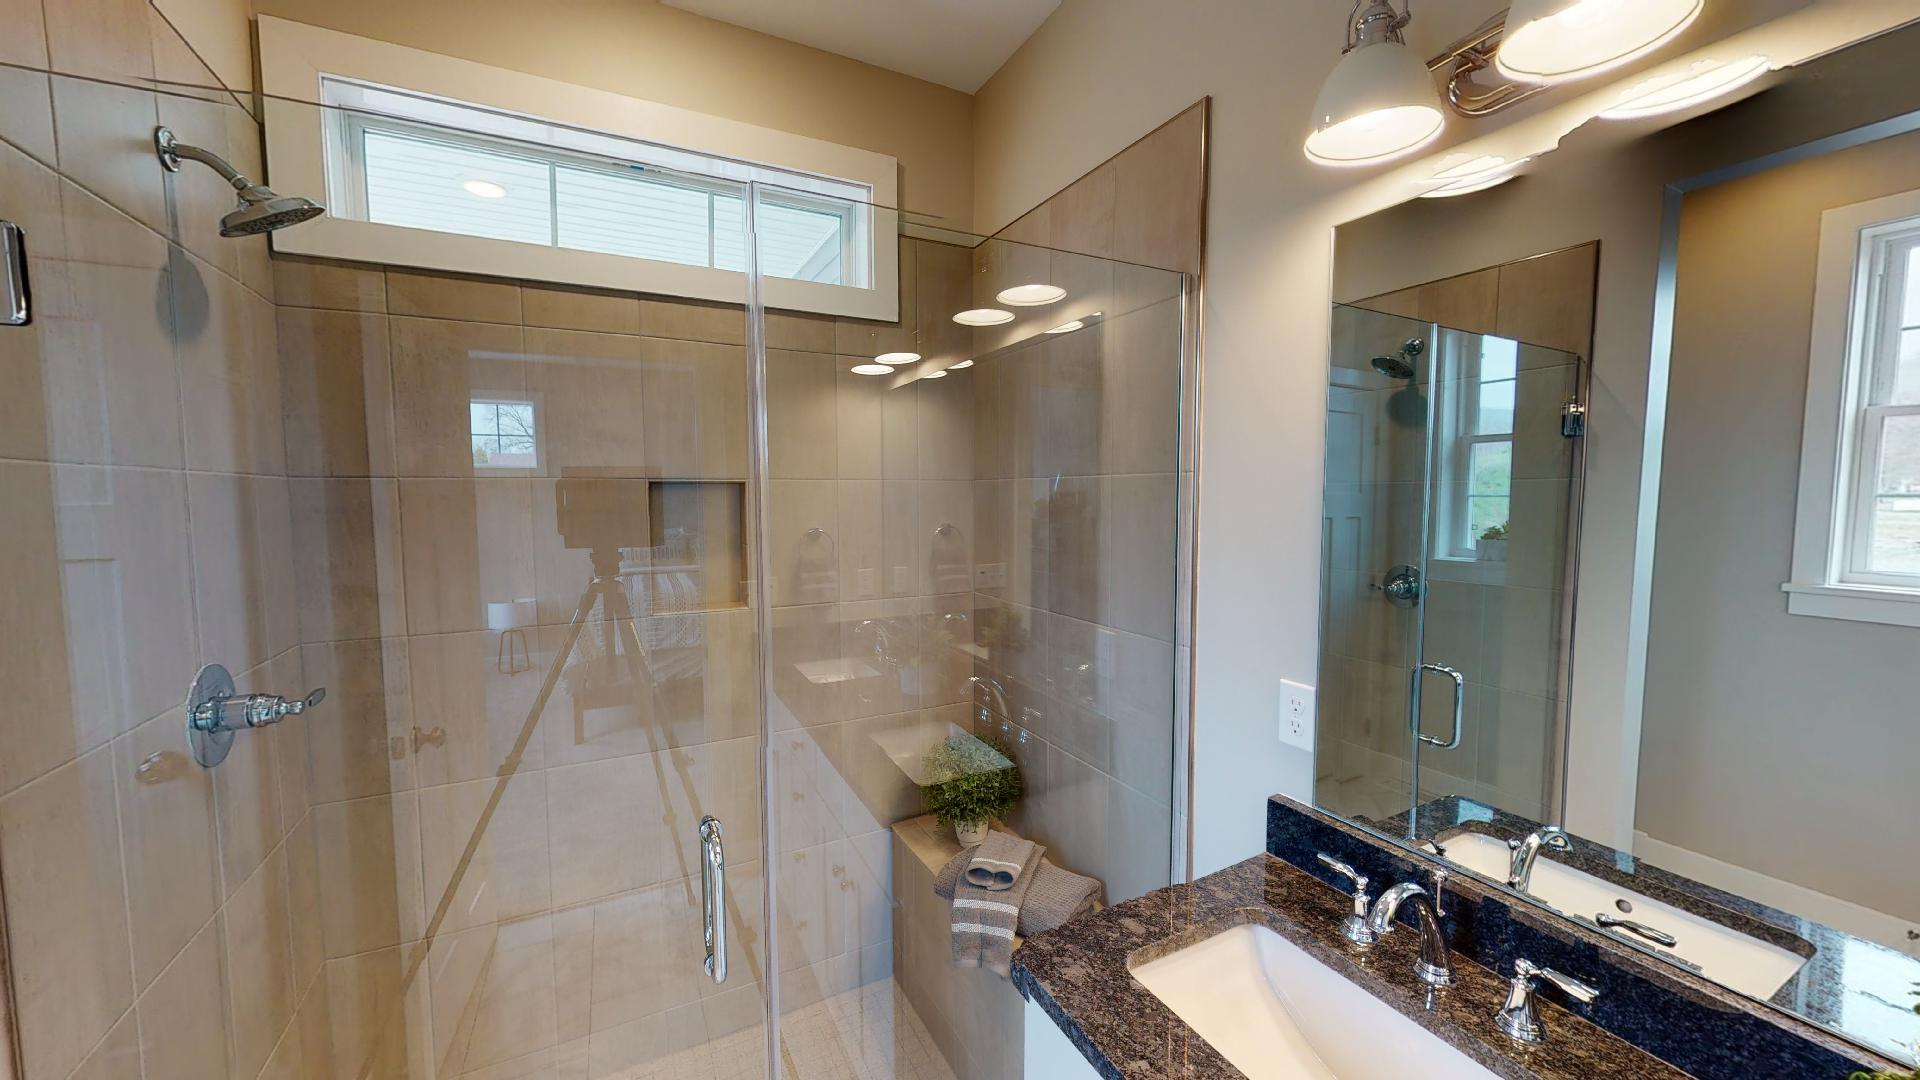 Bathroom featured in The Greenport By Riedman Homes in Elmira, NY